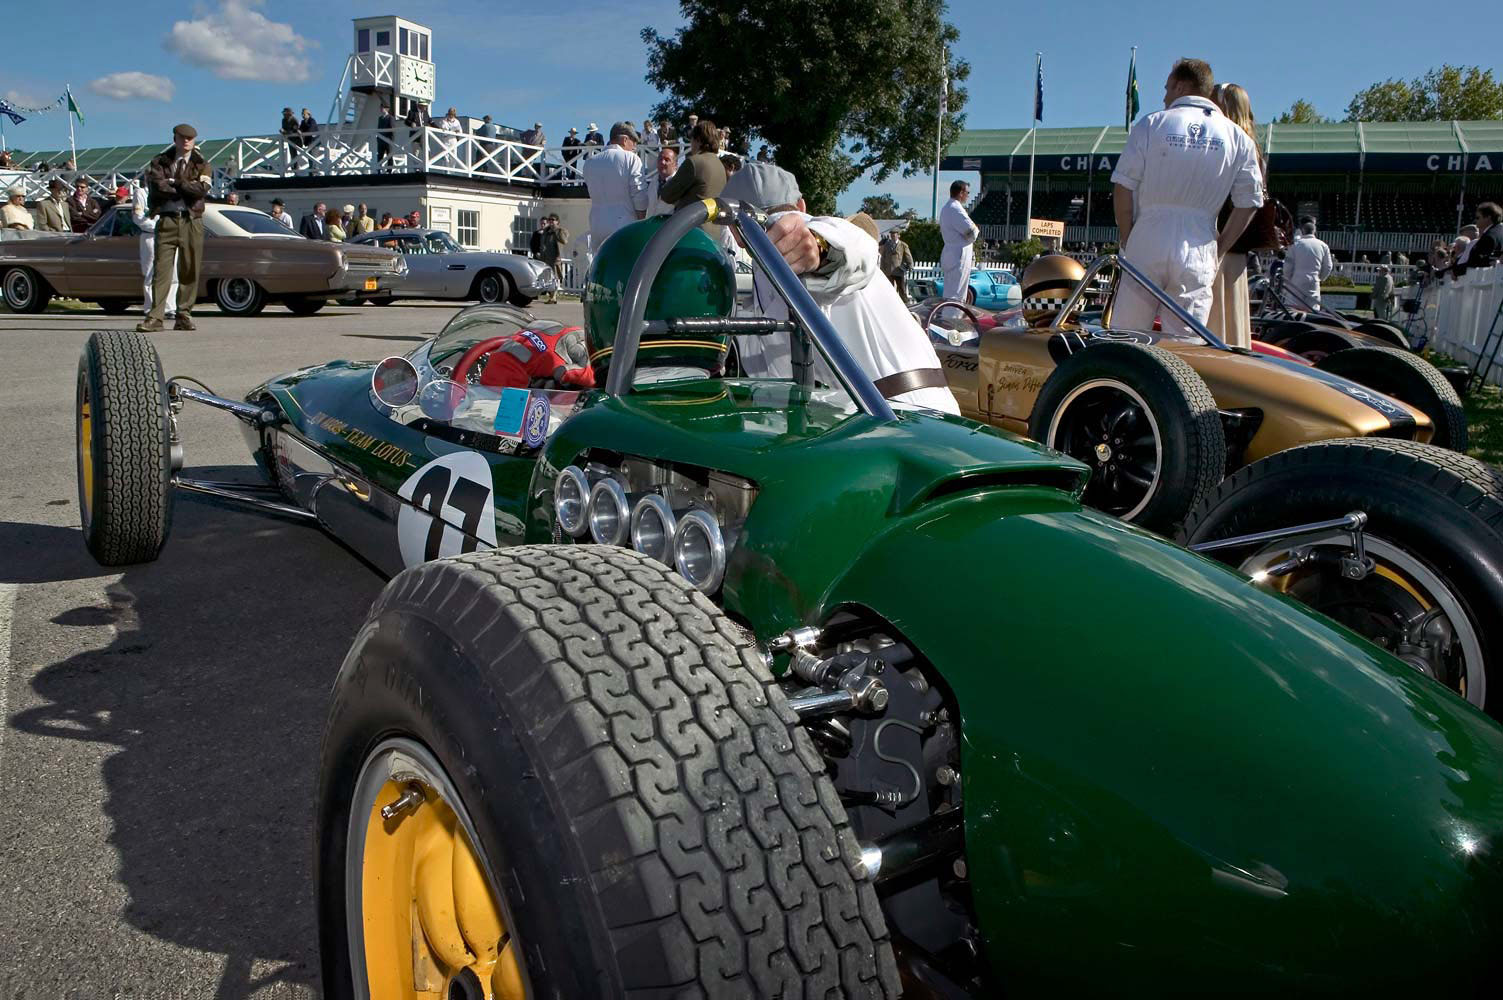 Chichester-Cup-Lotus-27-in-paddock-Rev-05